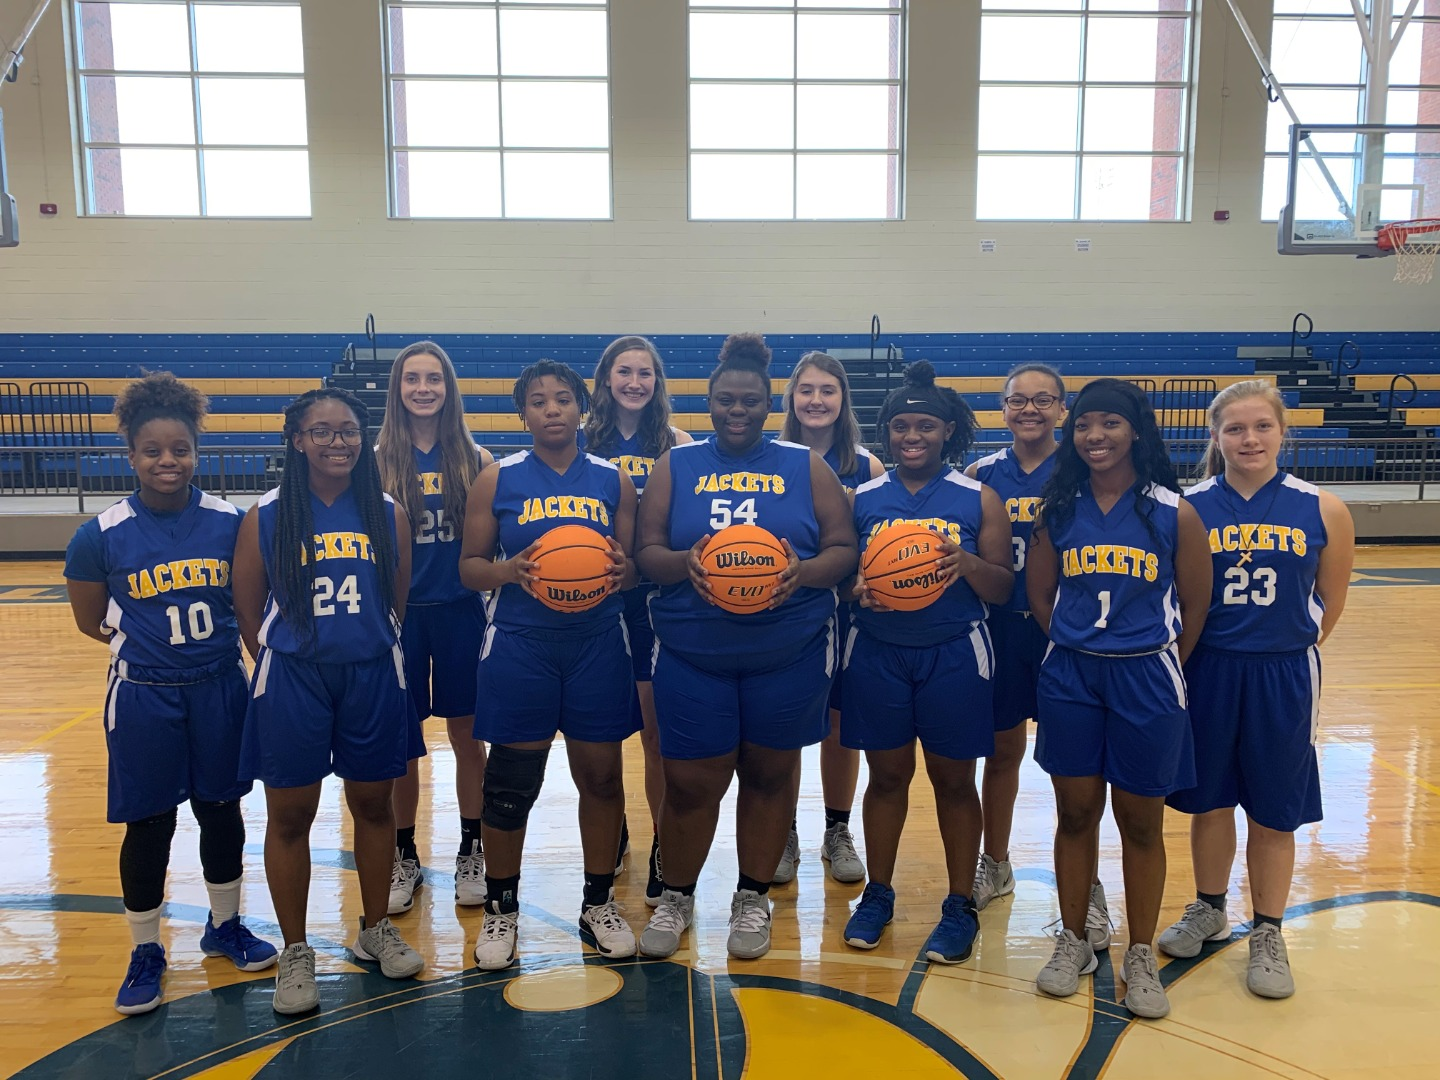 Lady Jackets Basketball 2020